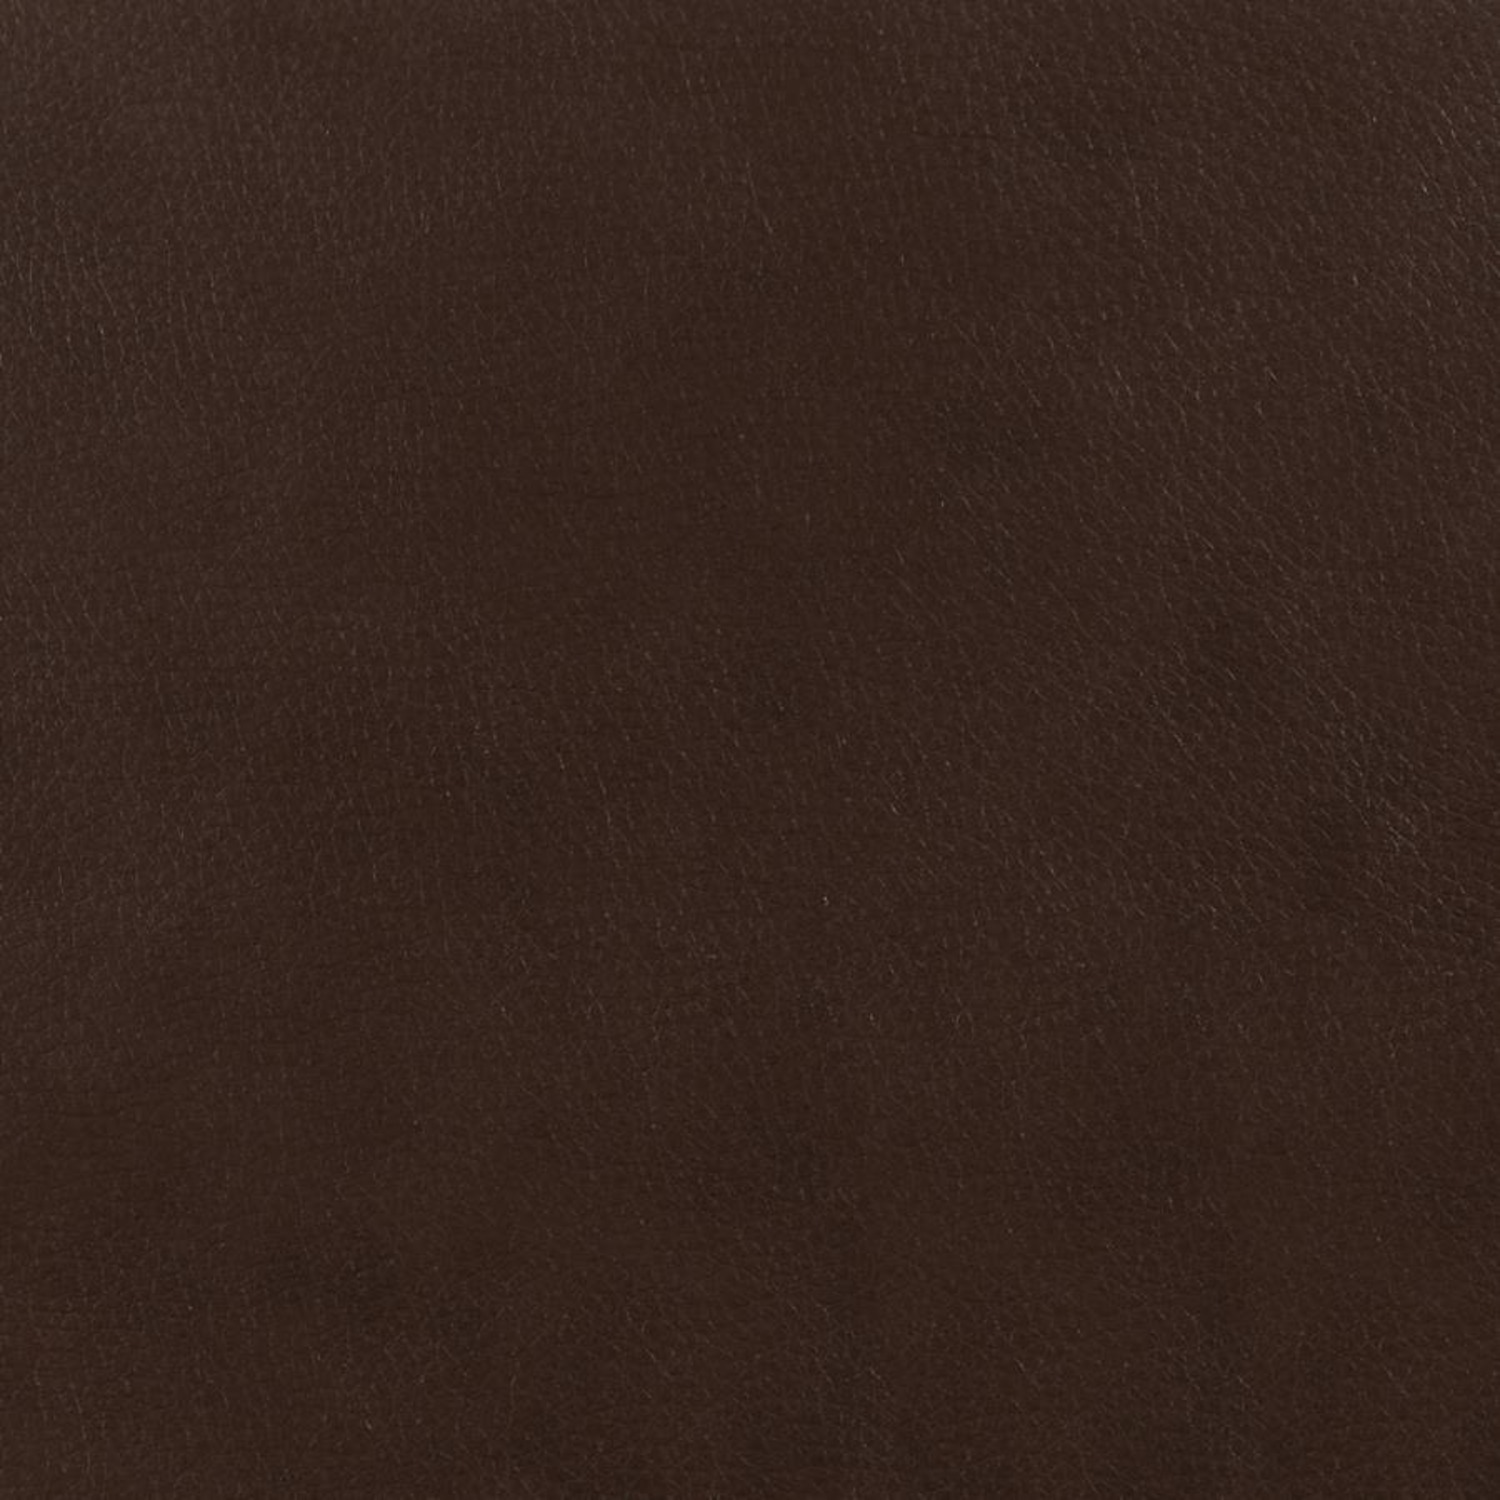 Ottoman In Brown Padded Breathable Leatherette - image-1